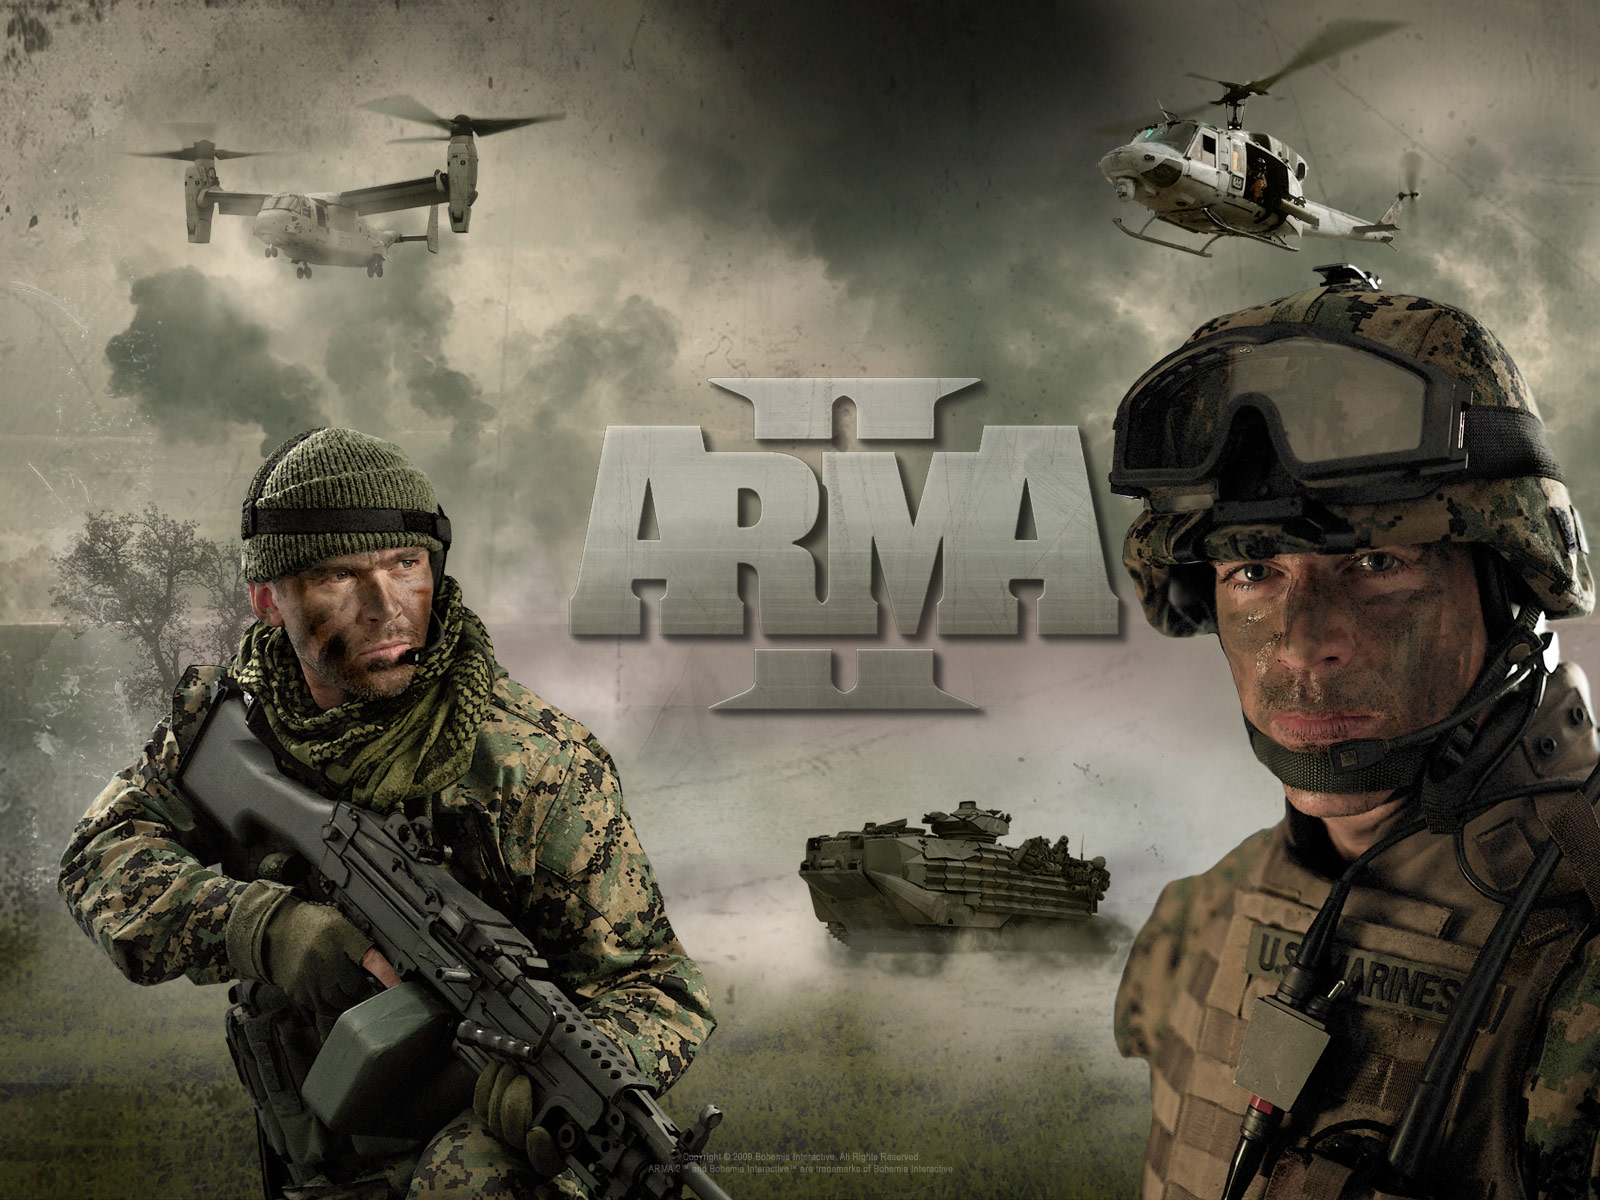 Arma 2 Background - Bing images